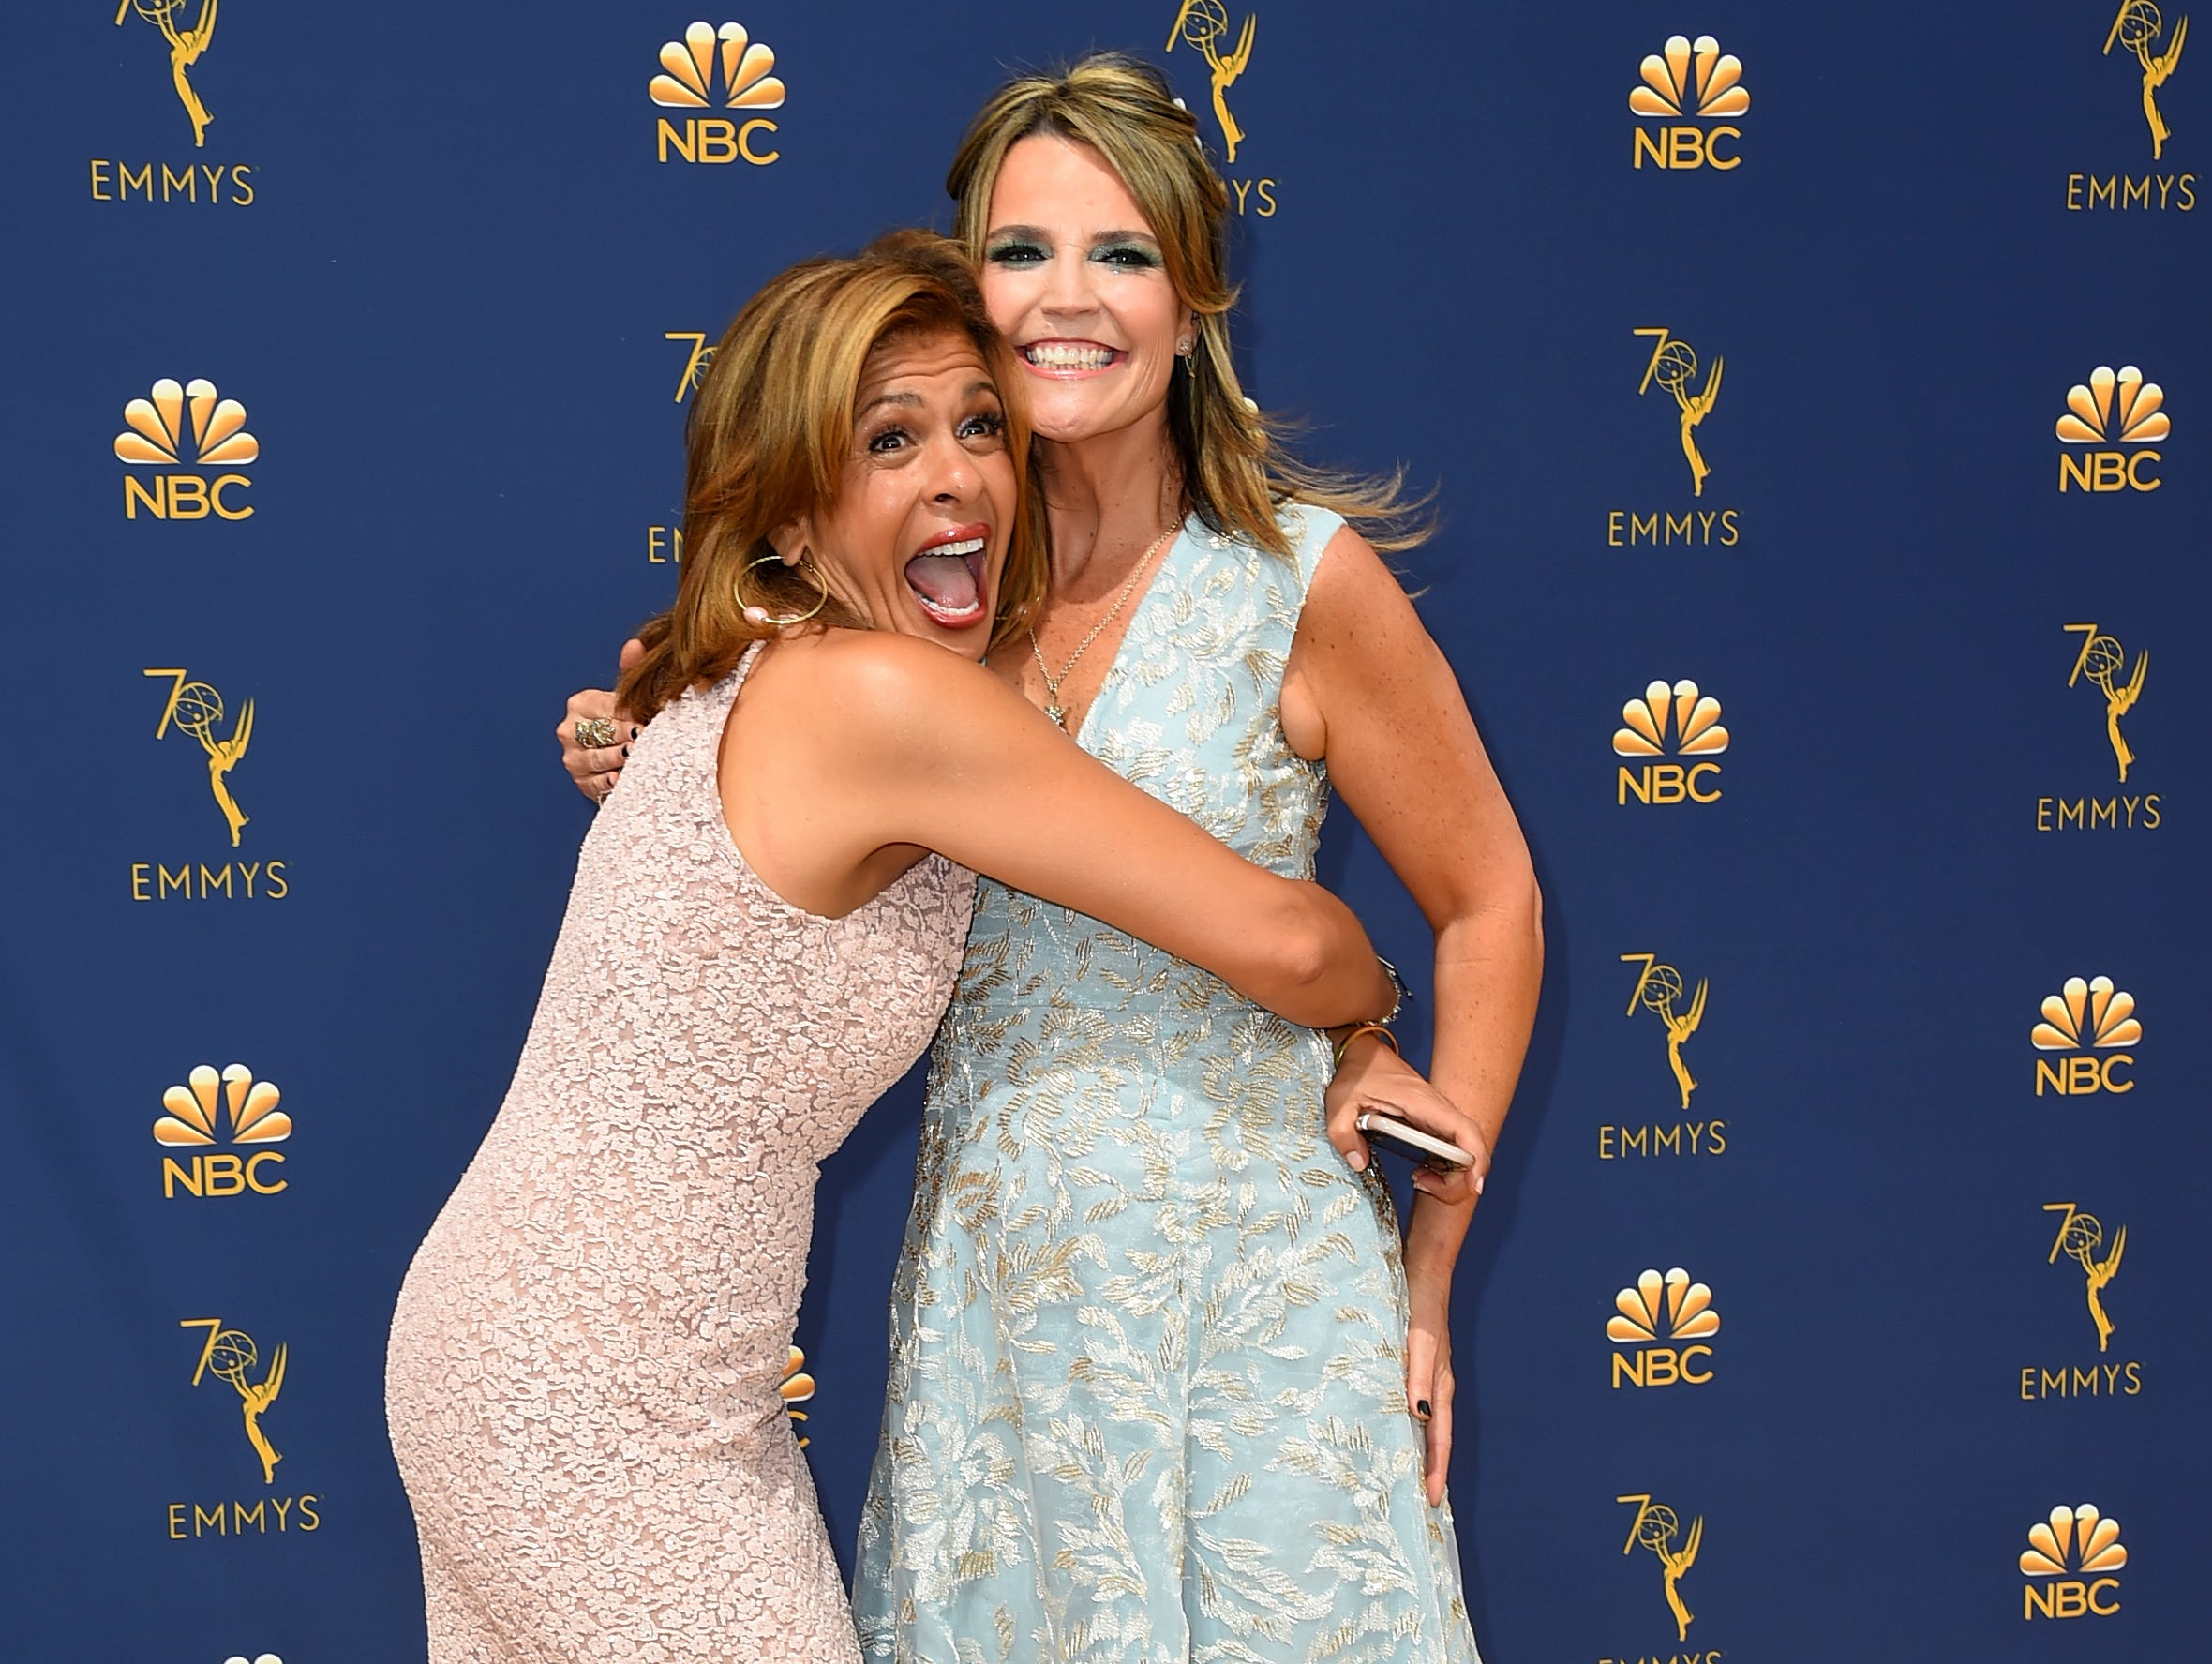 Hoda Kotb, left, and Savannah Guthrie arrive at the 70th Primetime Emmy Awards on Monday, Sept. 17, 2018, at the Microsoft Theater in Los Angeles.